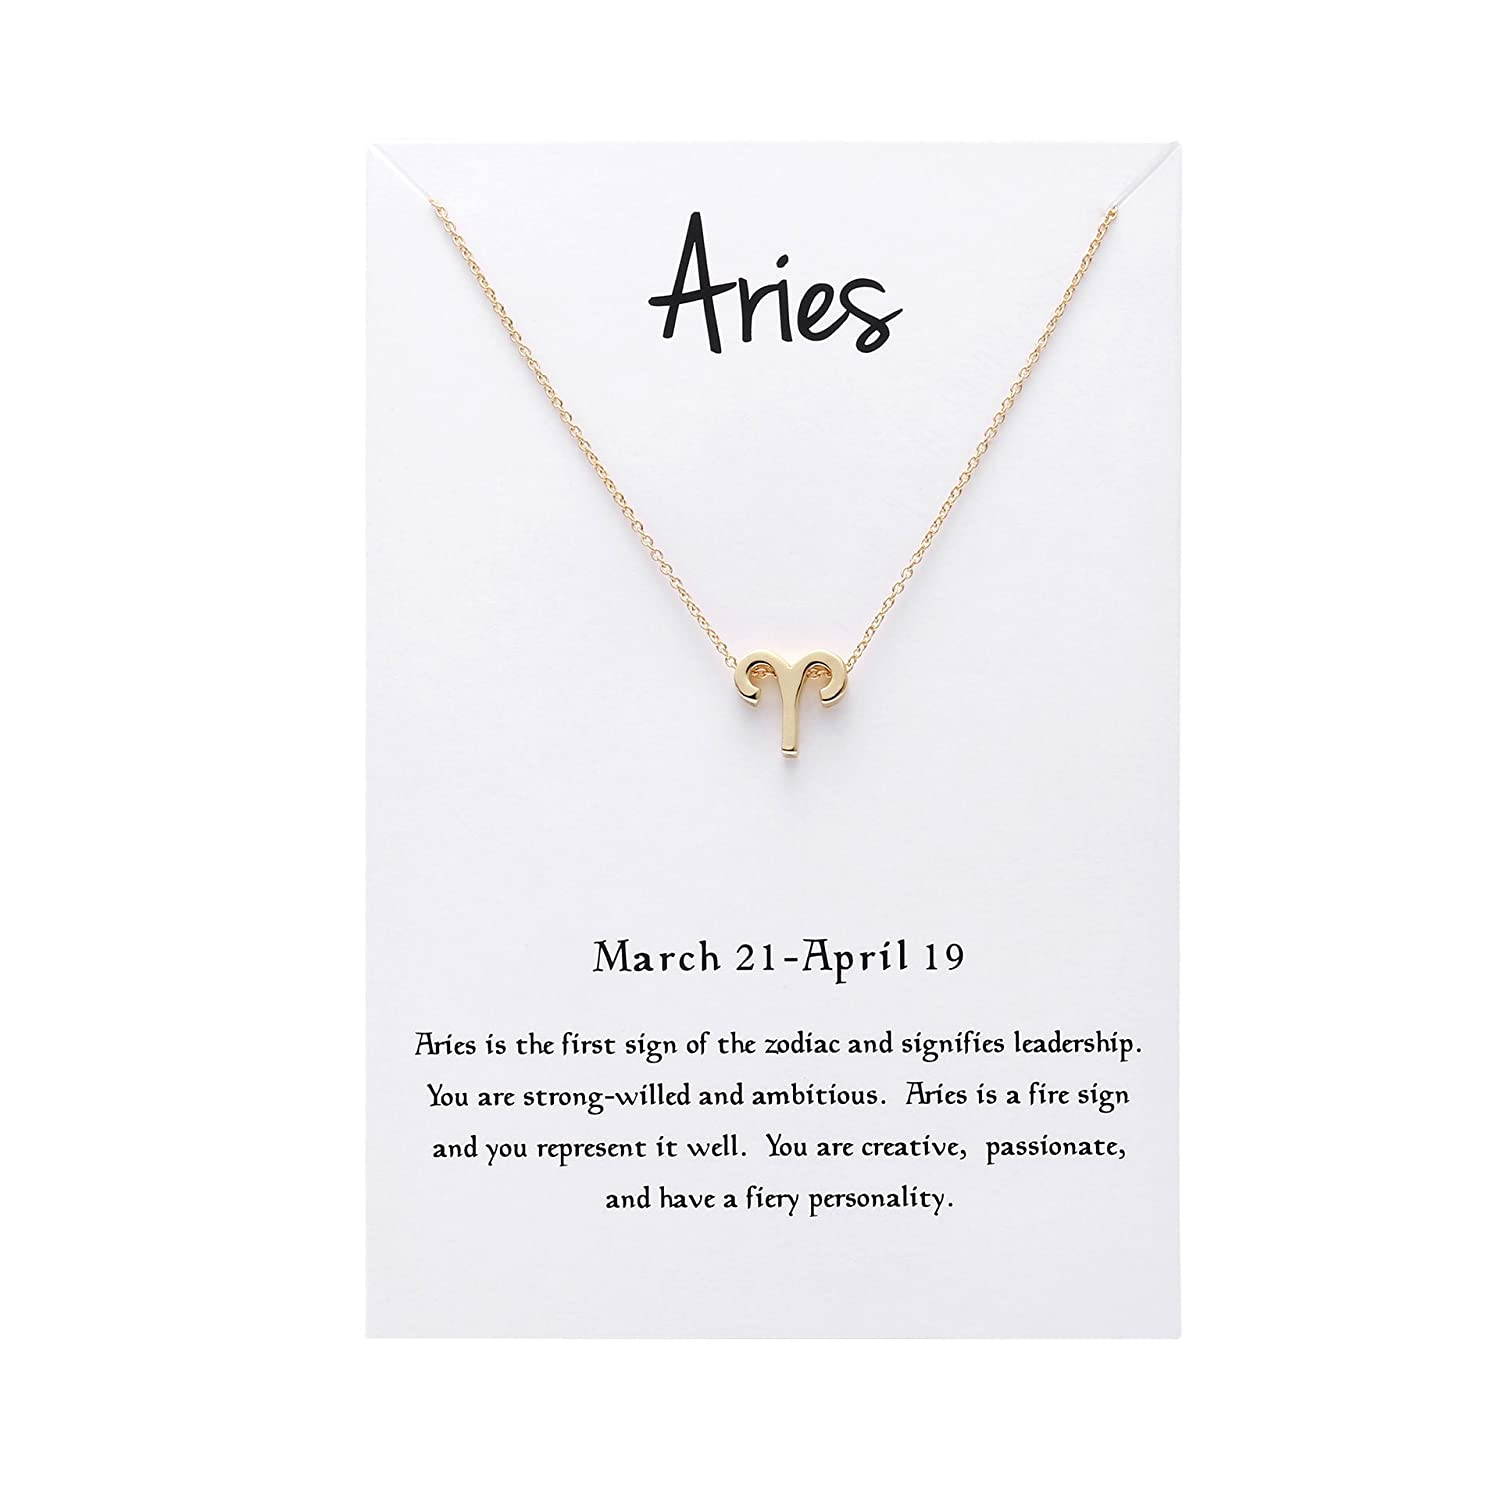 Snowpra 12 Constellation Pendant Necklace Astrology Gold Tone Chain with Message Card DK-003-Aquarius